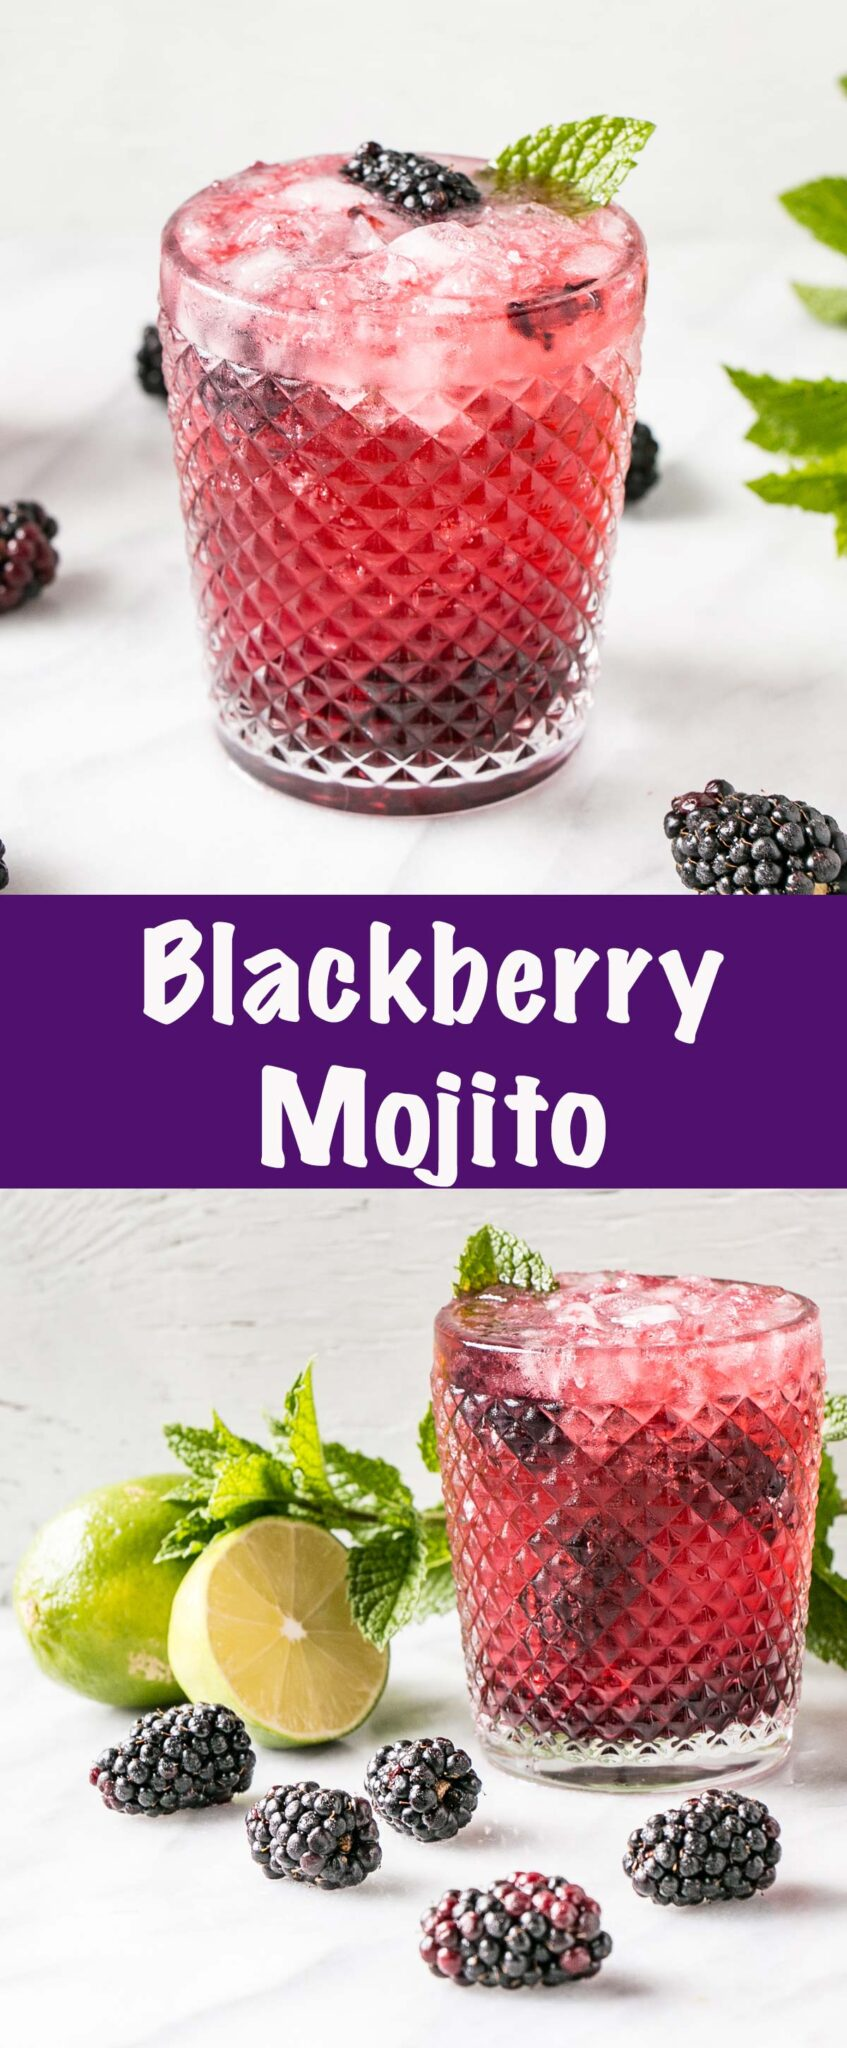 Blackberry Mojito recipe long collage